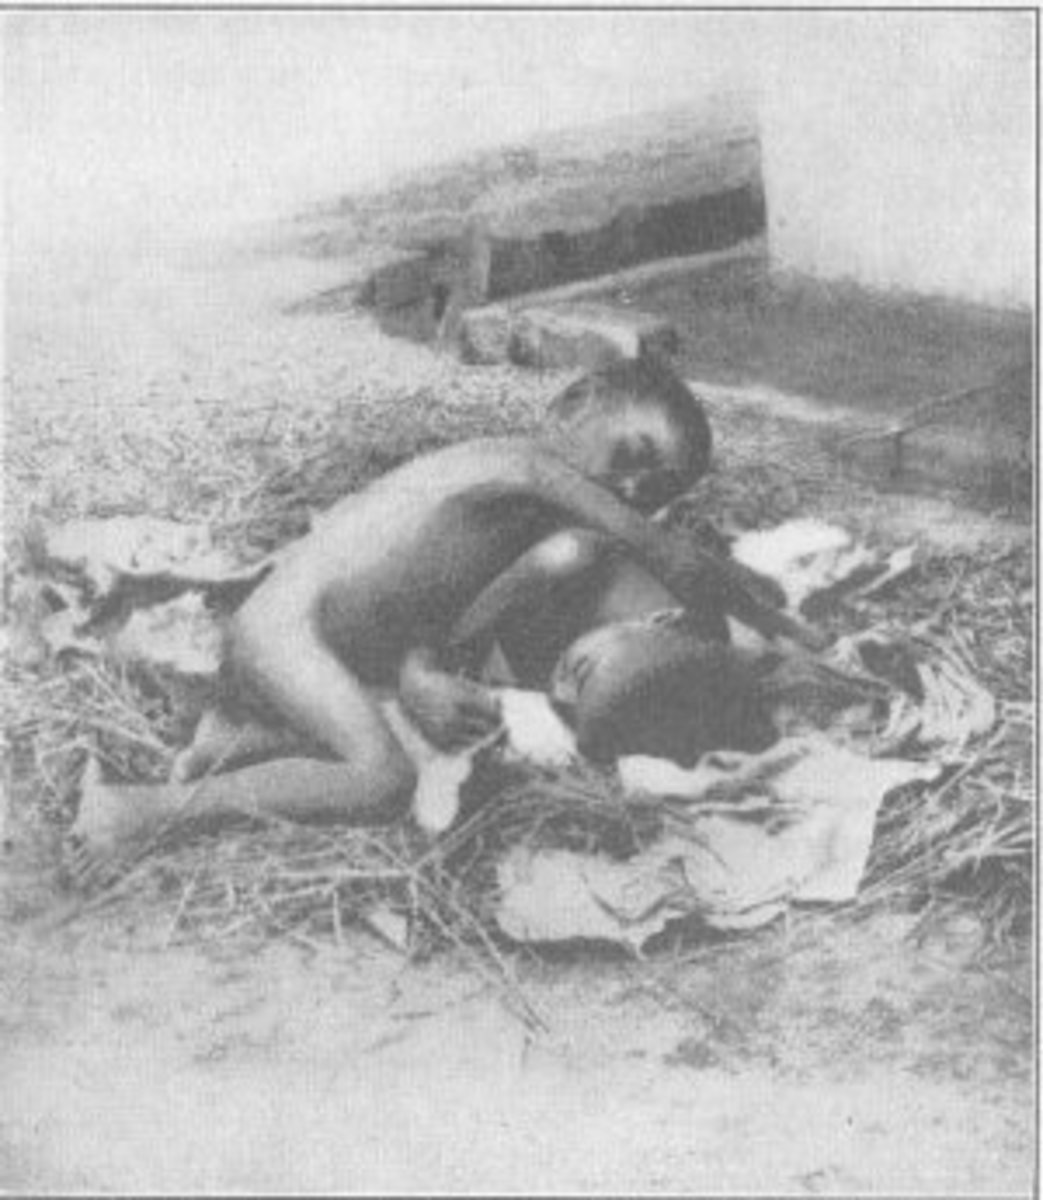 A picture of Kamala and Amala in a wolf den taken by the Reverend Joseph Singh. For a long time, it was thought that the girls had genuinely been raised by wolves, but it was later revealed to be an elaborate hoax initiated by Singh himself.